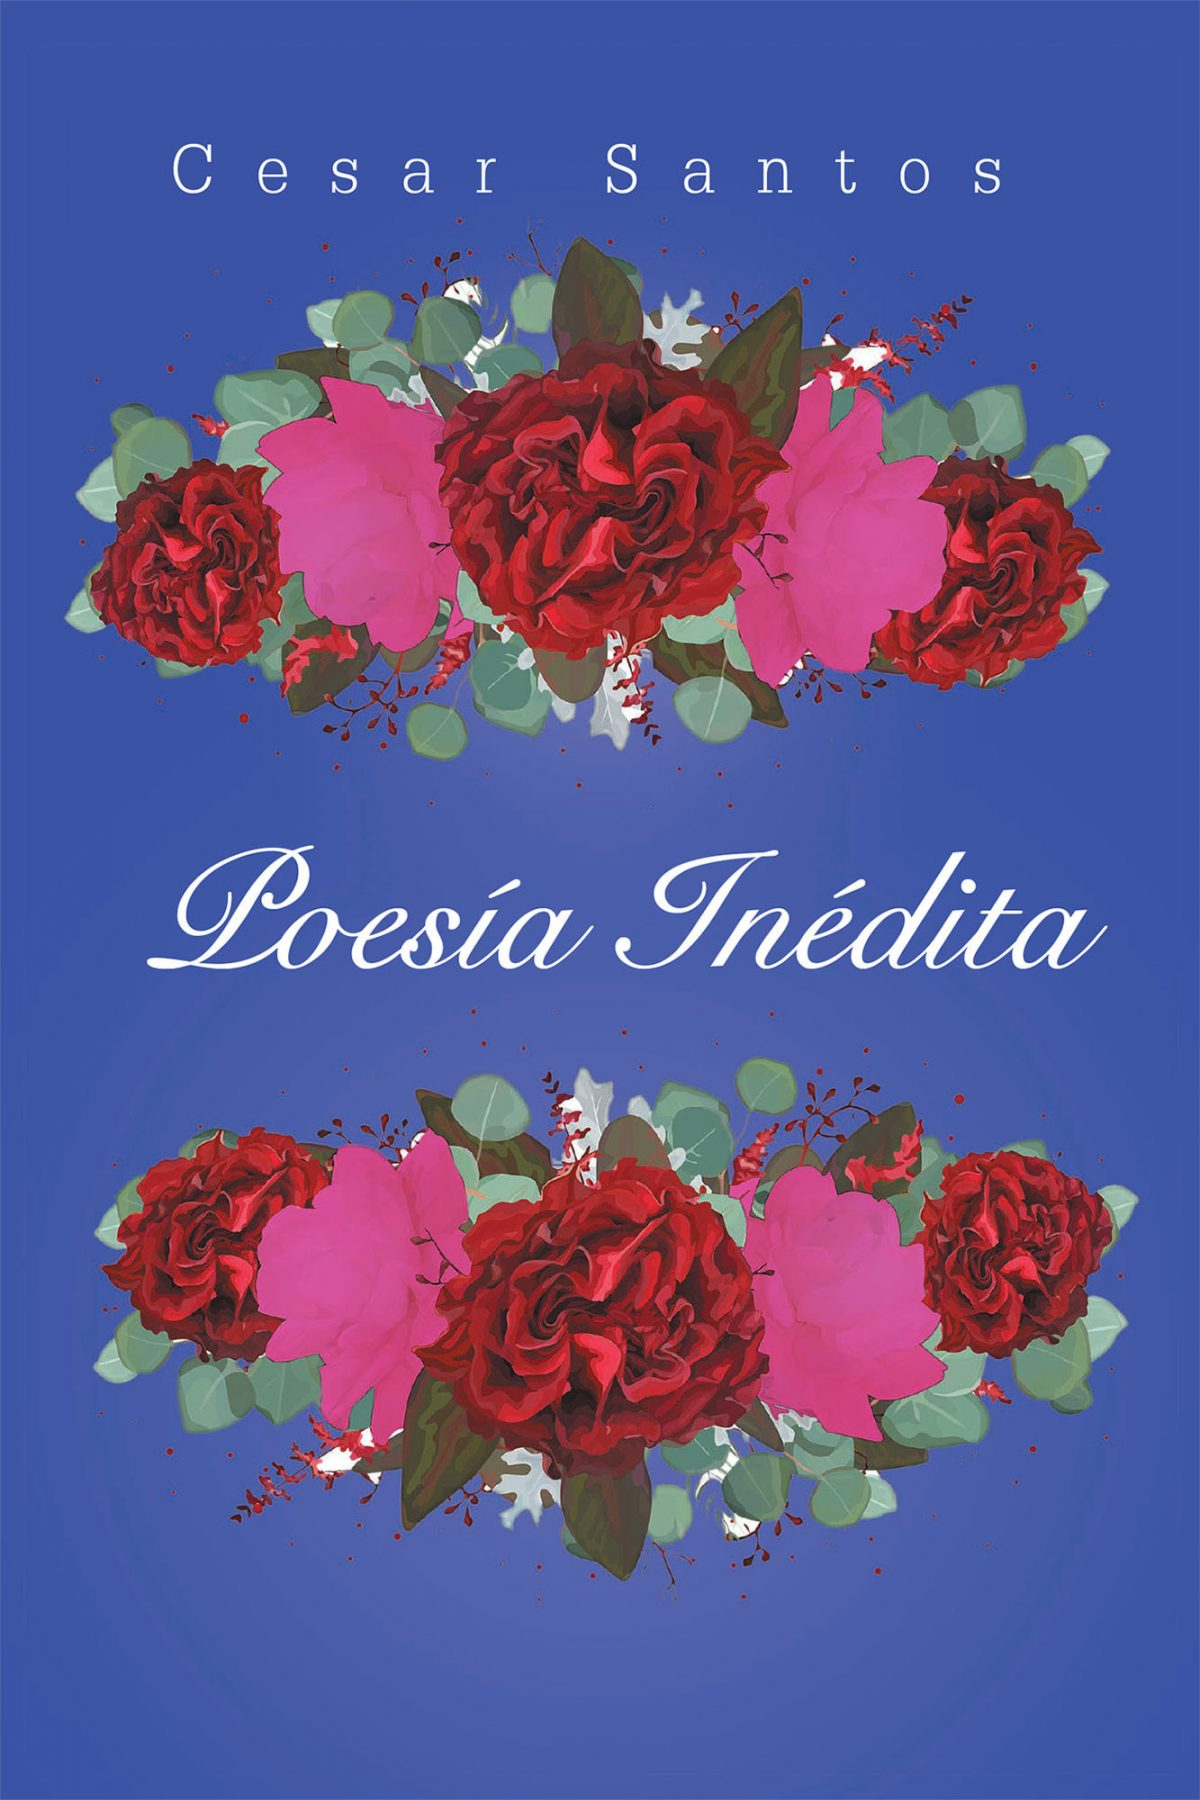 Cesar Santos's New Book Poesía Inédita, A Collection Of Evoking Poems That Reflect The Overwhelming Love Of God That Brings Grace To All Creation